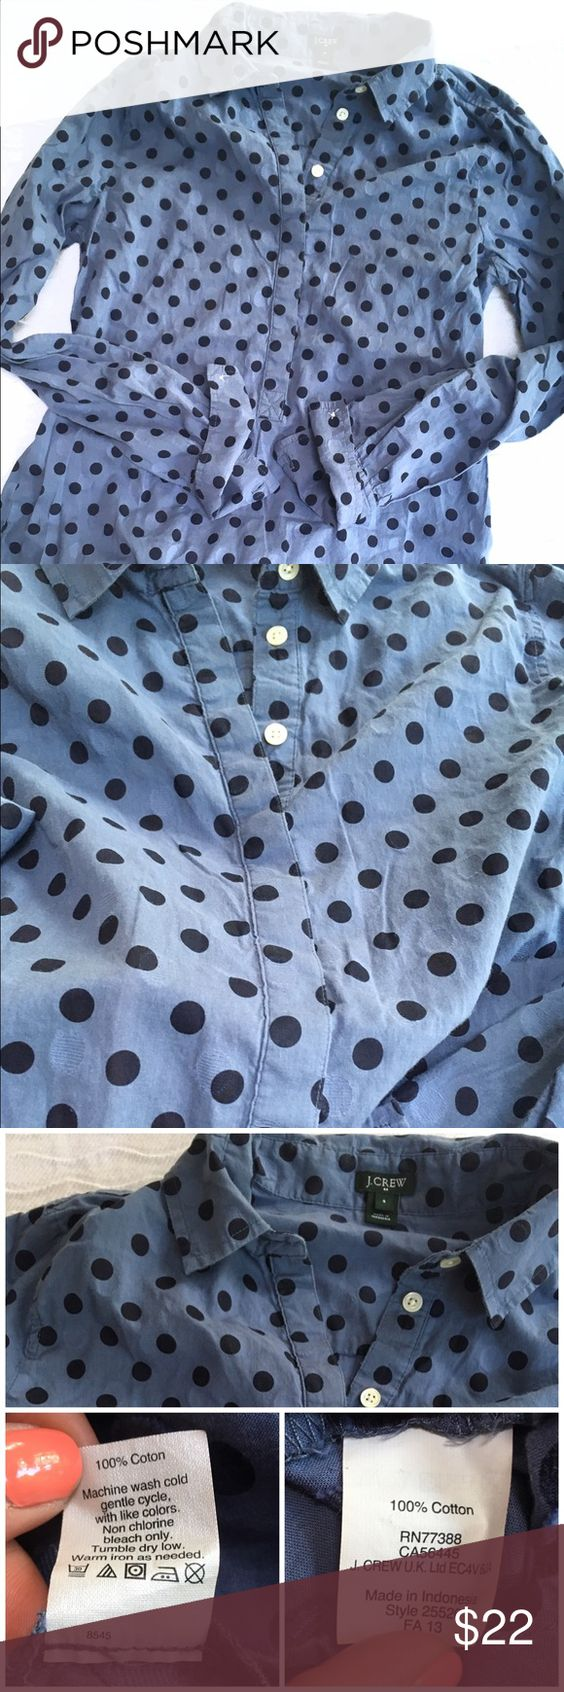 J Crew button down polka dot top Such a versatile, fun top! Keep it simple with jeans and white sneaks or white shorts and flip flops, or layer under a sweater this fall. Perfect condition. Buttons go down about halfway. Sleeves can be worn rolled up or long. Great transitional piece for summer-fall-spring in a timeless silhouette. A classic! 100% cotton, J Crew, size small. J. Crew Tops Button Down Shirts